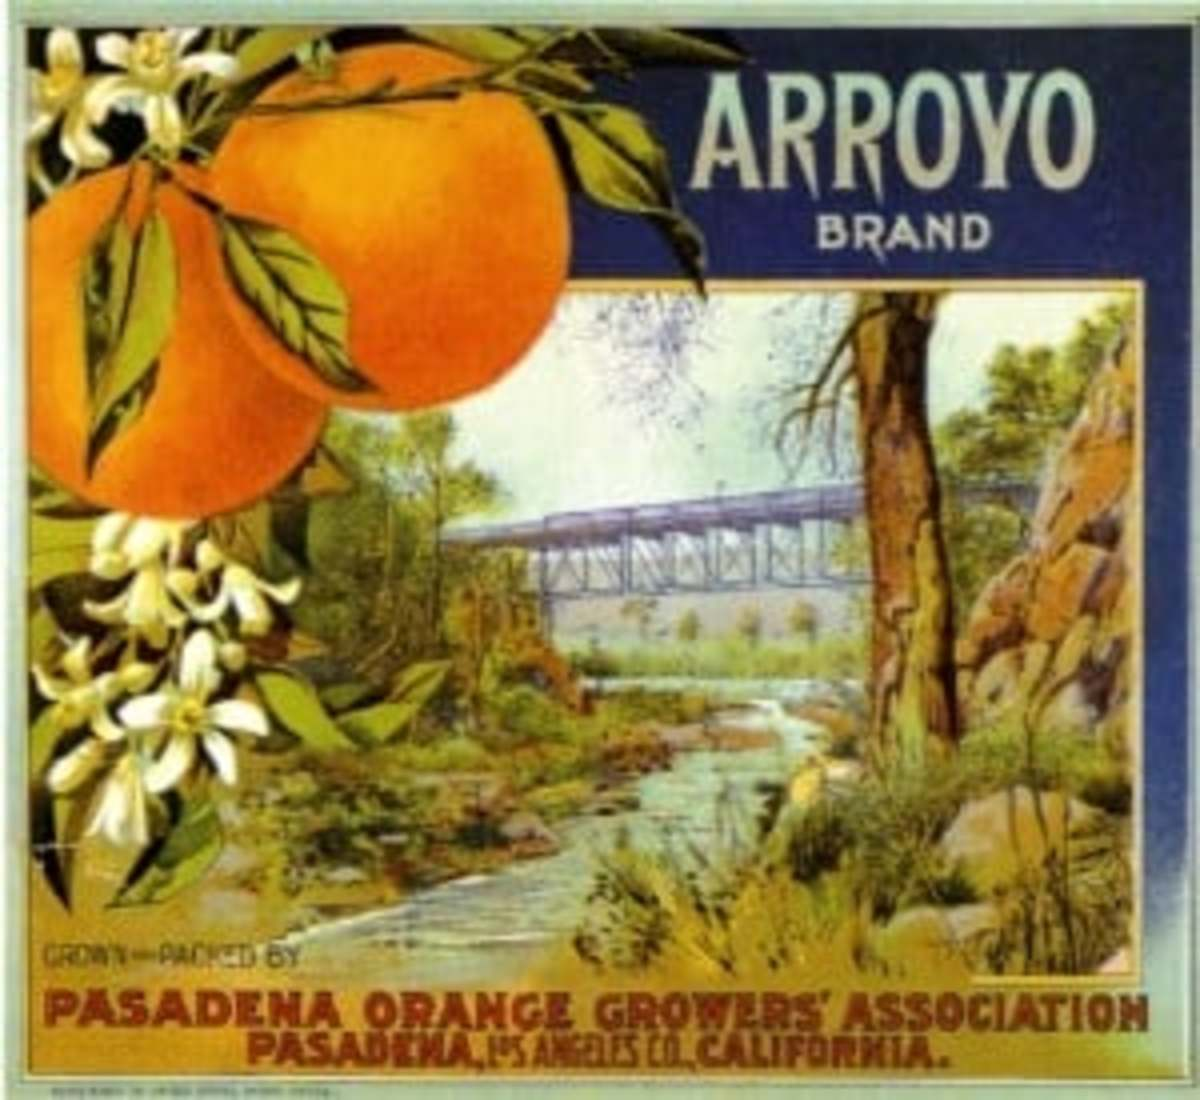 Whoever designed this earlier bridge over the Arroyo certainly didn't know Beaux Arts like Waddell